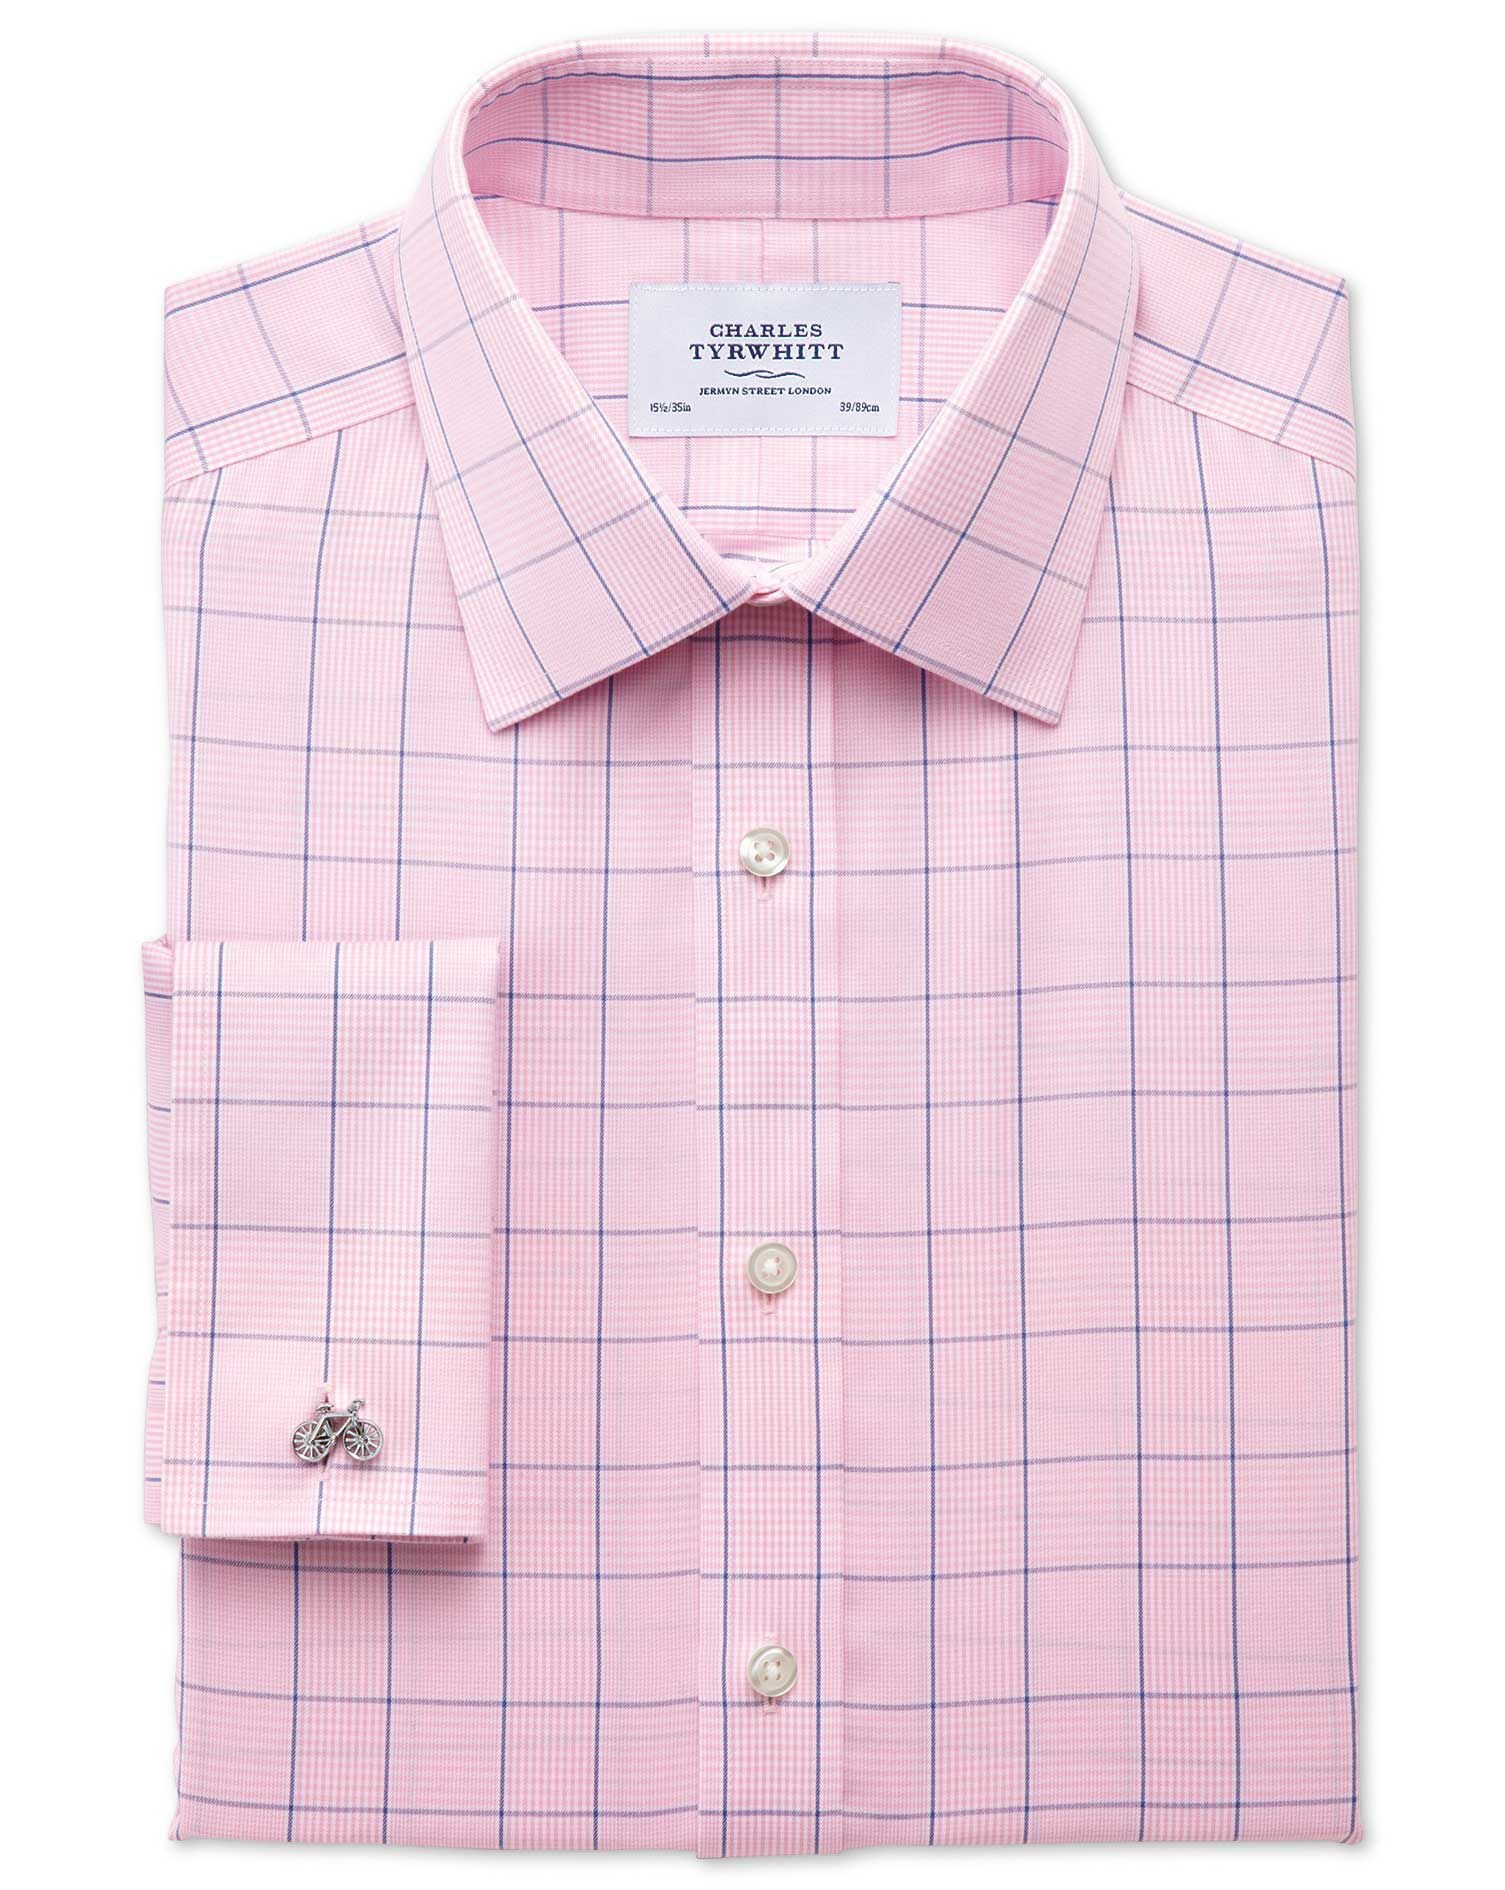 Classic Fit Non-Iron Prince Of Wales Check Pink and Blue Cotton Formal Shirt Single Cuff Size 16/36